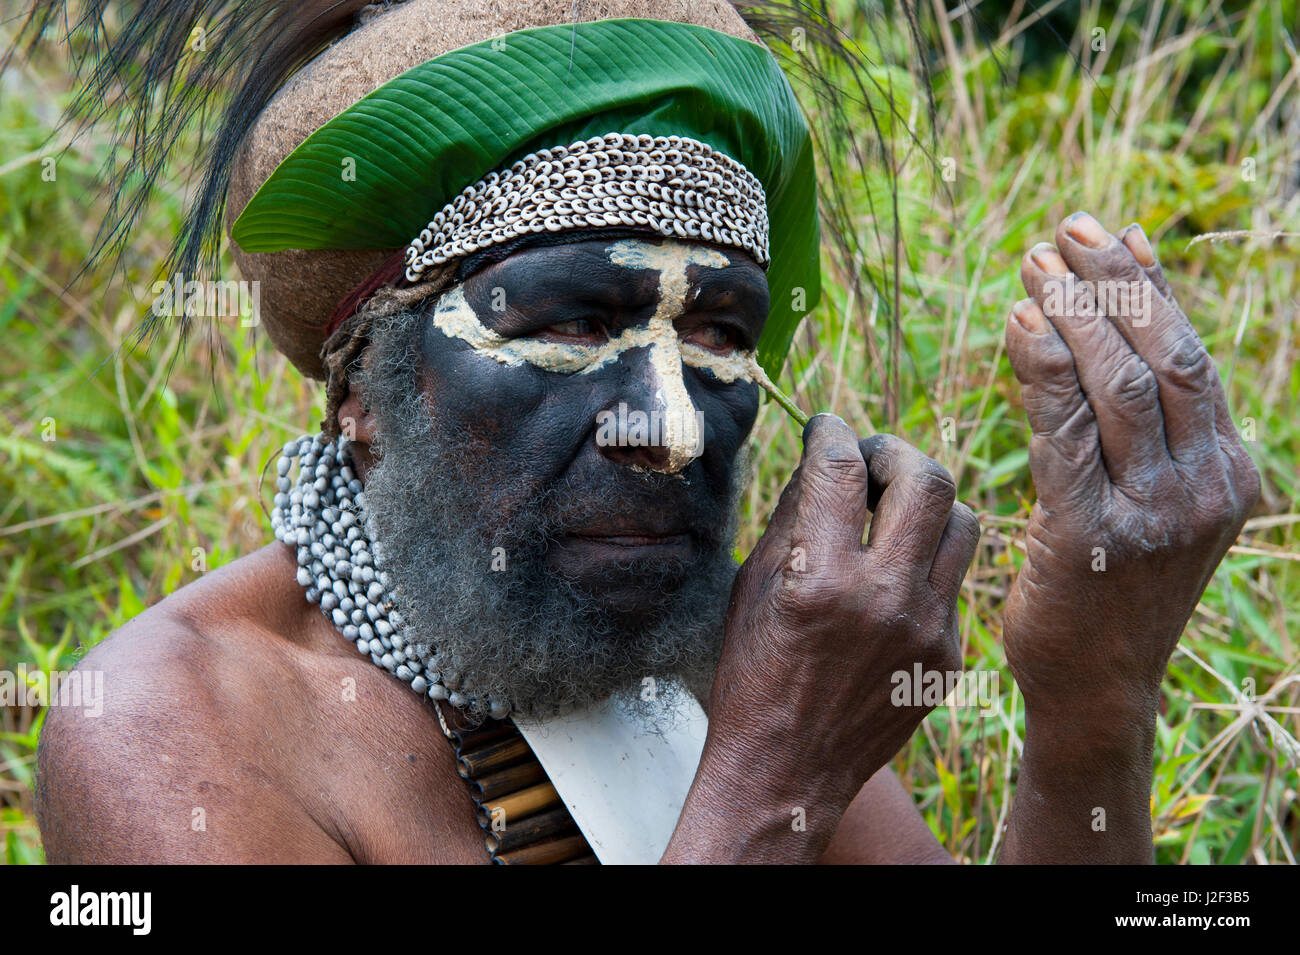 Colorfully dressed local tribal chief painting his face in the Highlands of Papua New Guinea, Melanesia - Stock Image